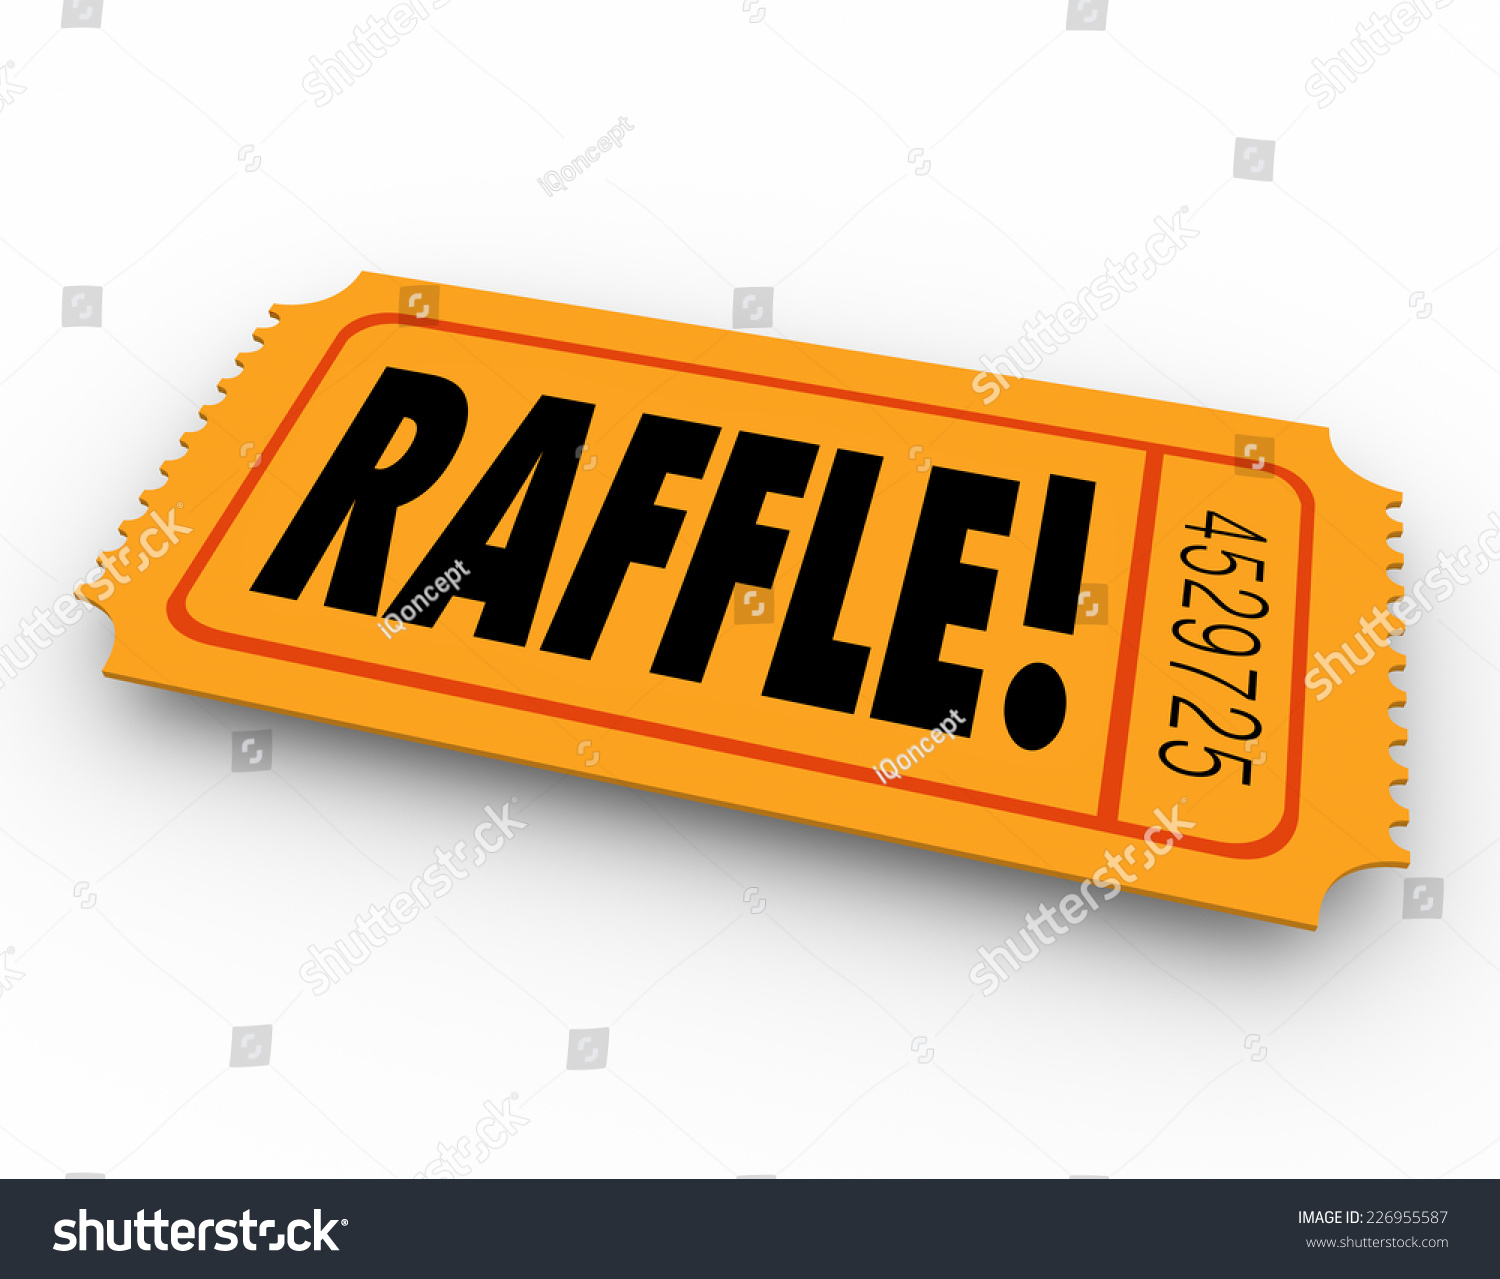 raffle word on orange ticket you stock illustration  raffle word on orange ticket for you to enter to win a drawing for a cash